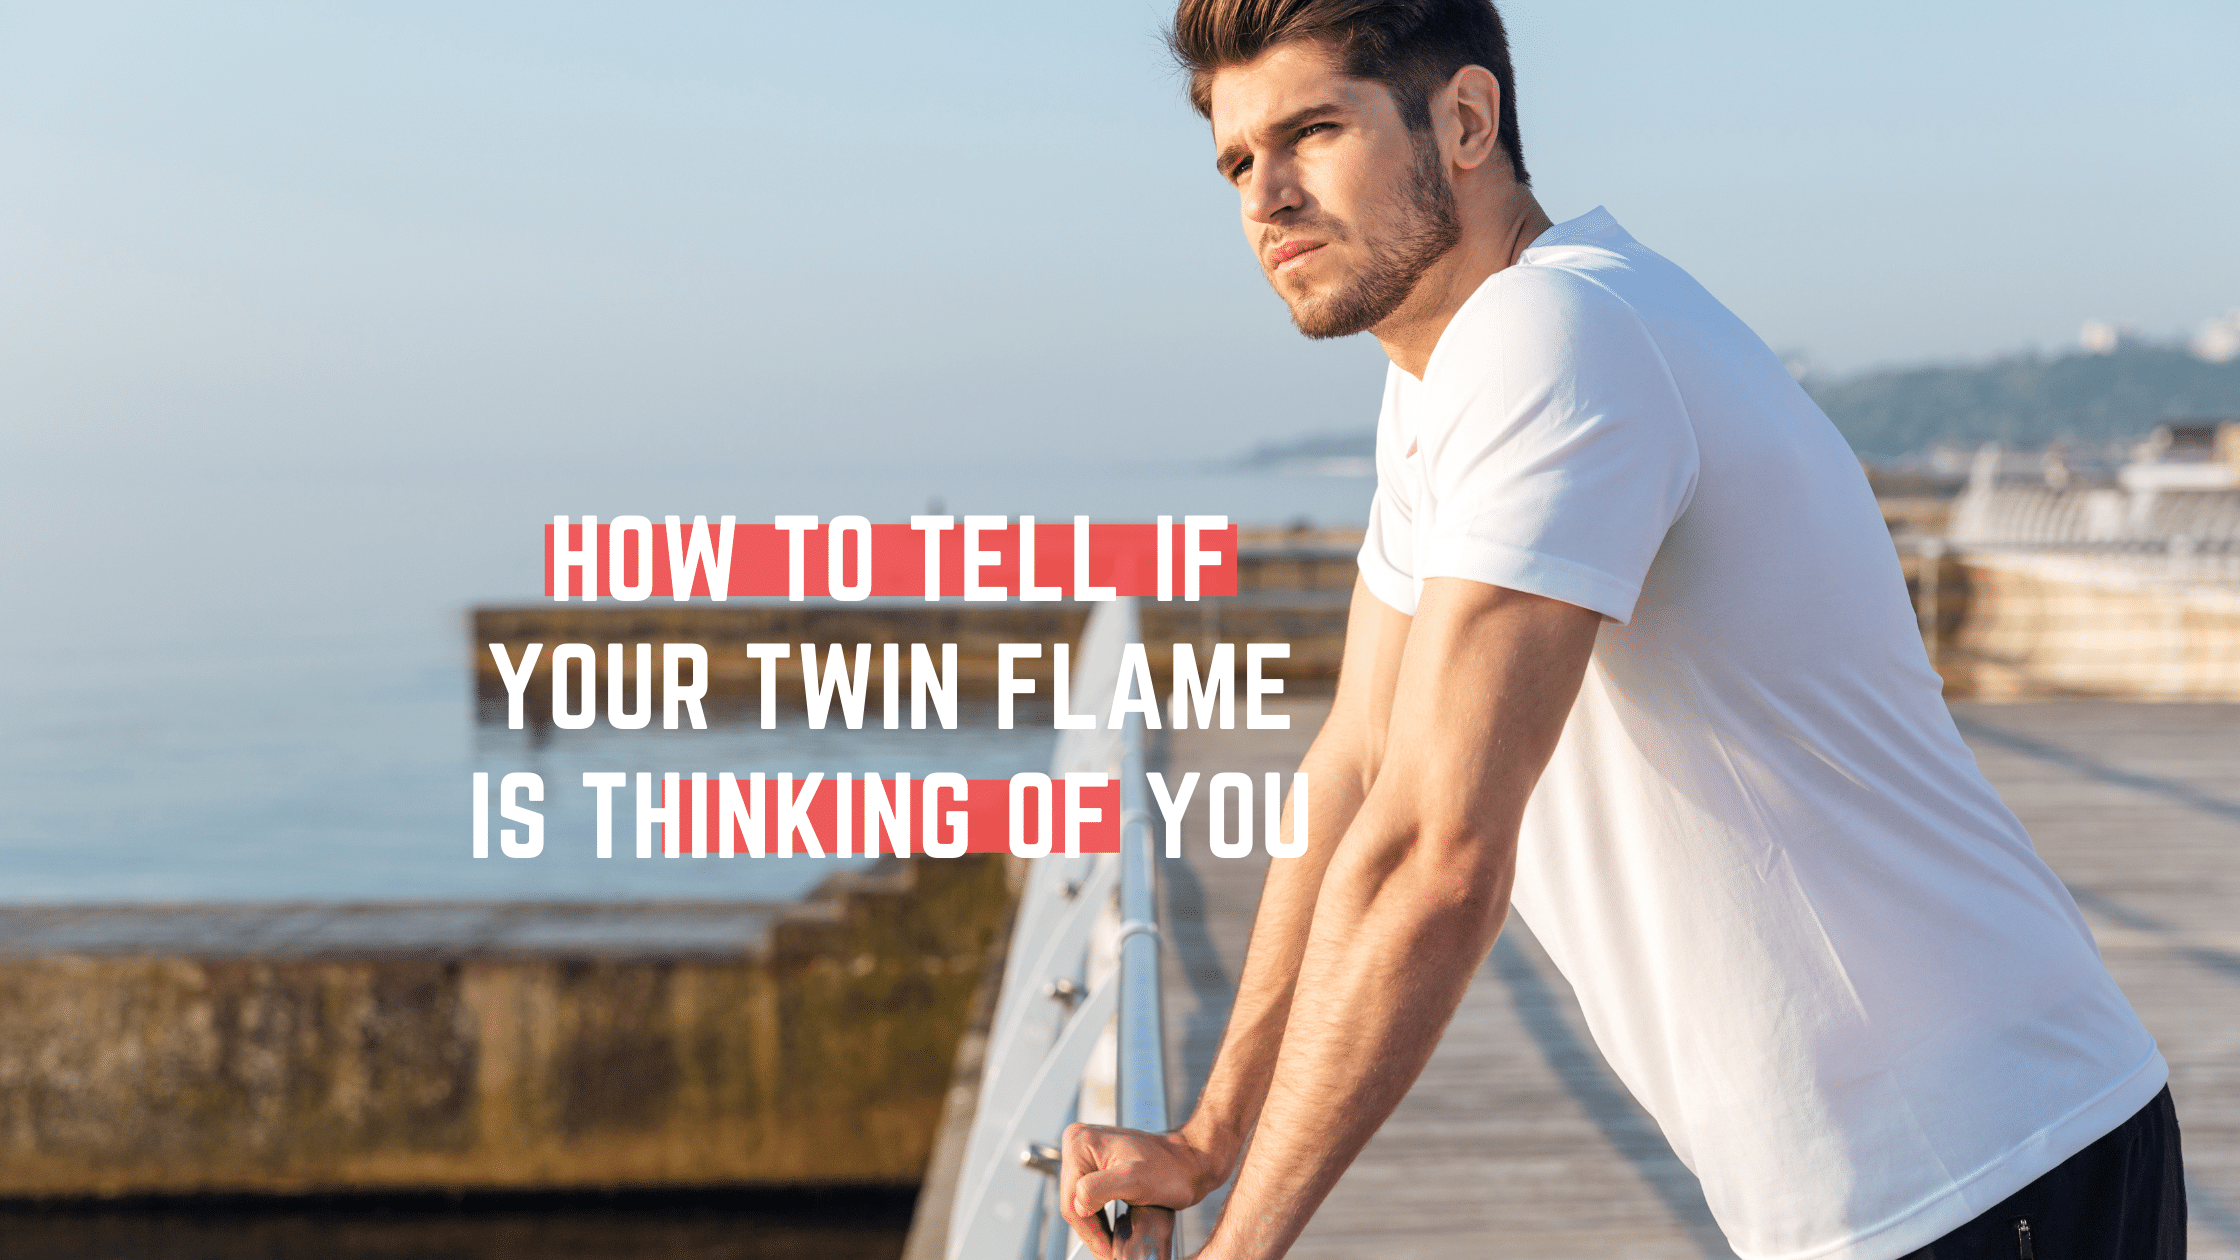 How to Tell If Your Twin Flame Is Thinking of You